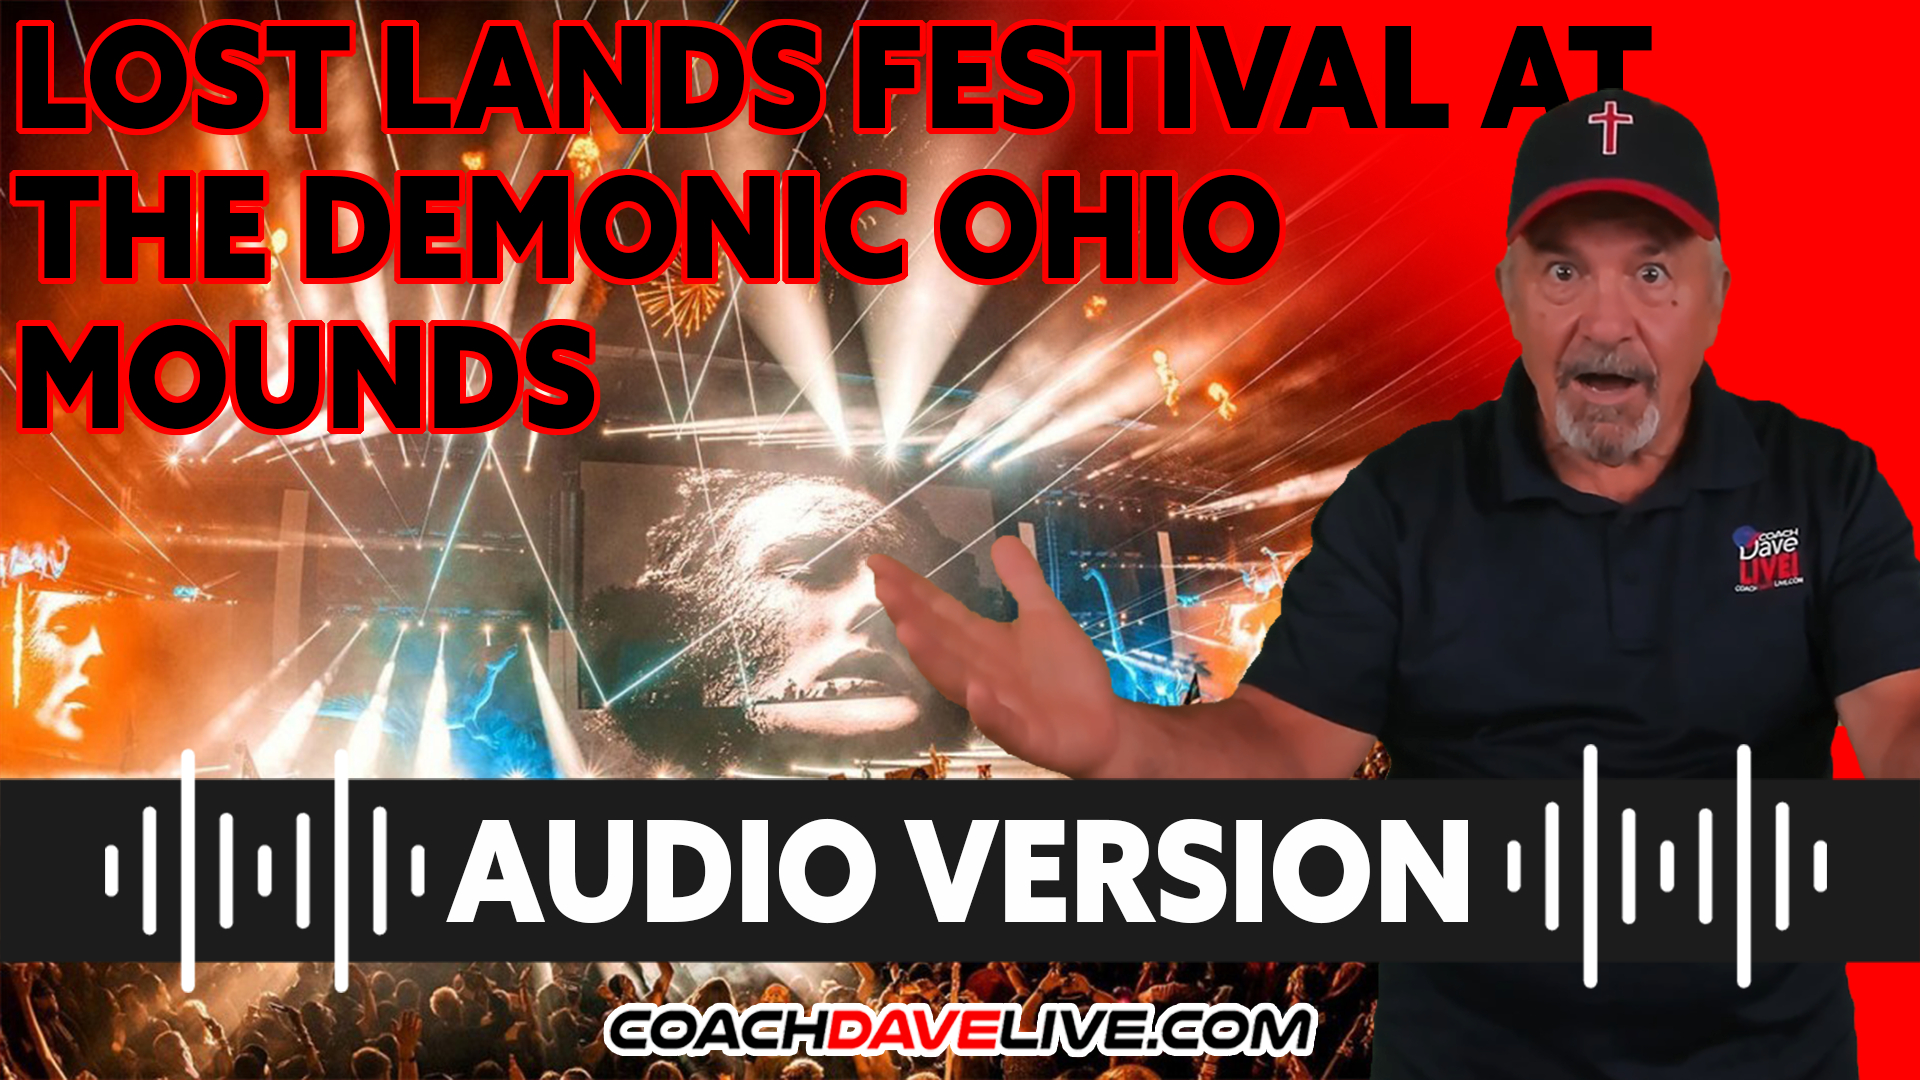 Coach Dave LIVE   9-20-2021   LOST LANDS FESTIVAL AT THE DEMONIC OHIO MOUNDS - AUDIO ONLY